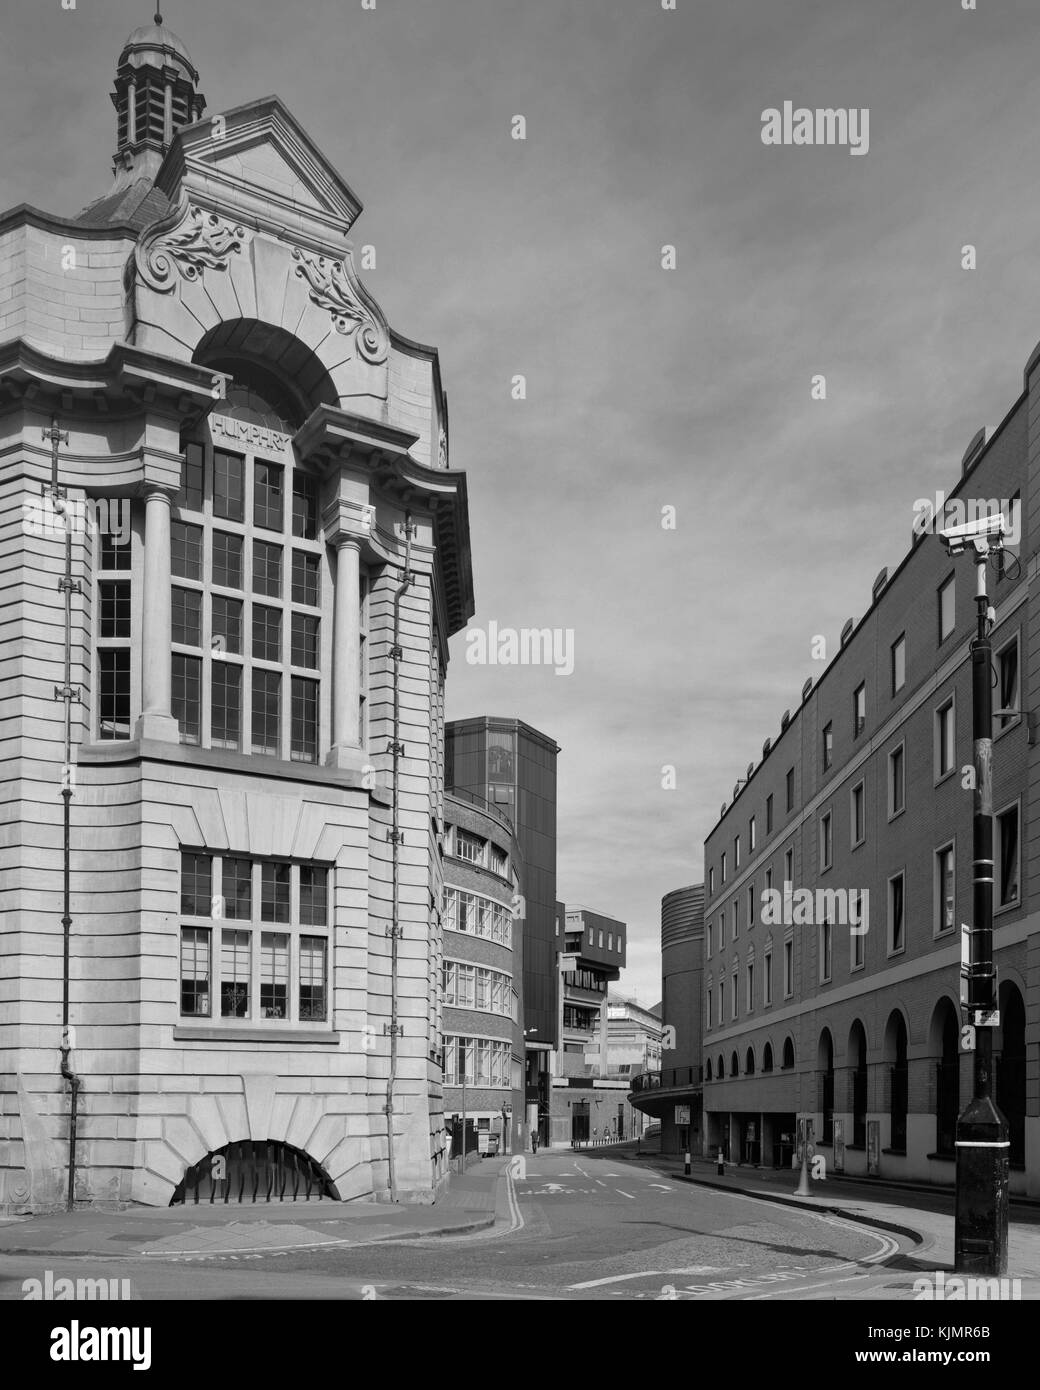 Humphry Museum and entrance to Lion Yard carpark, Downing Street Cambridge - Stock Image